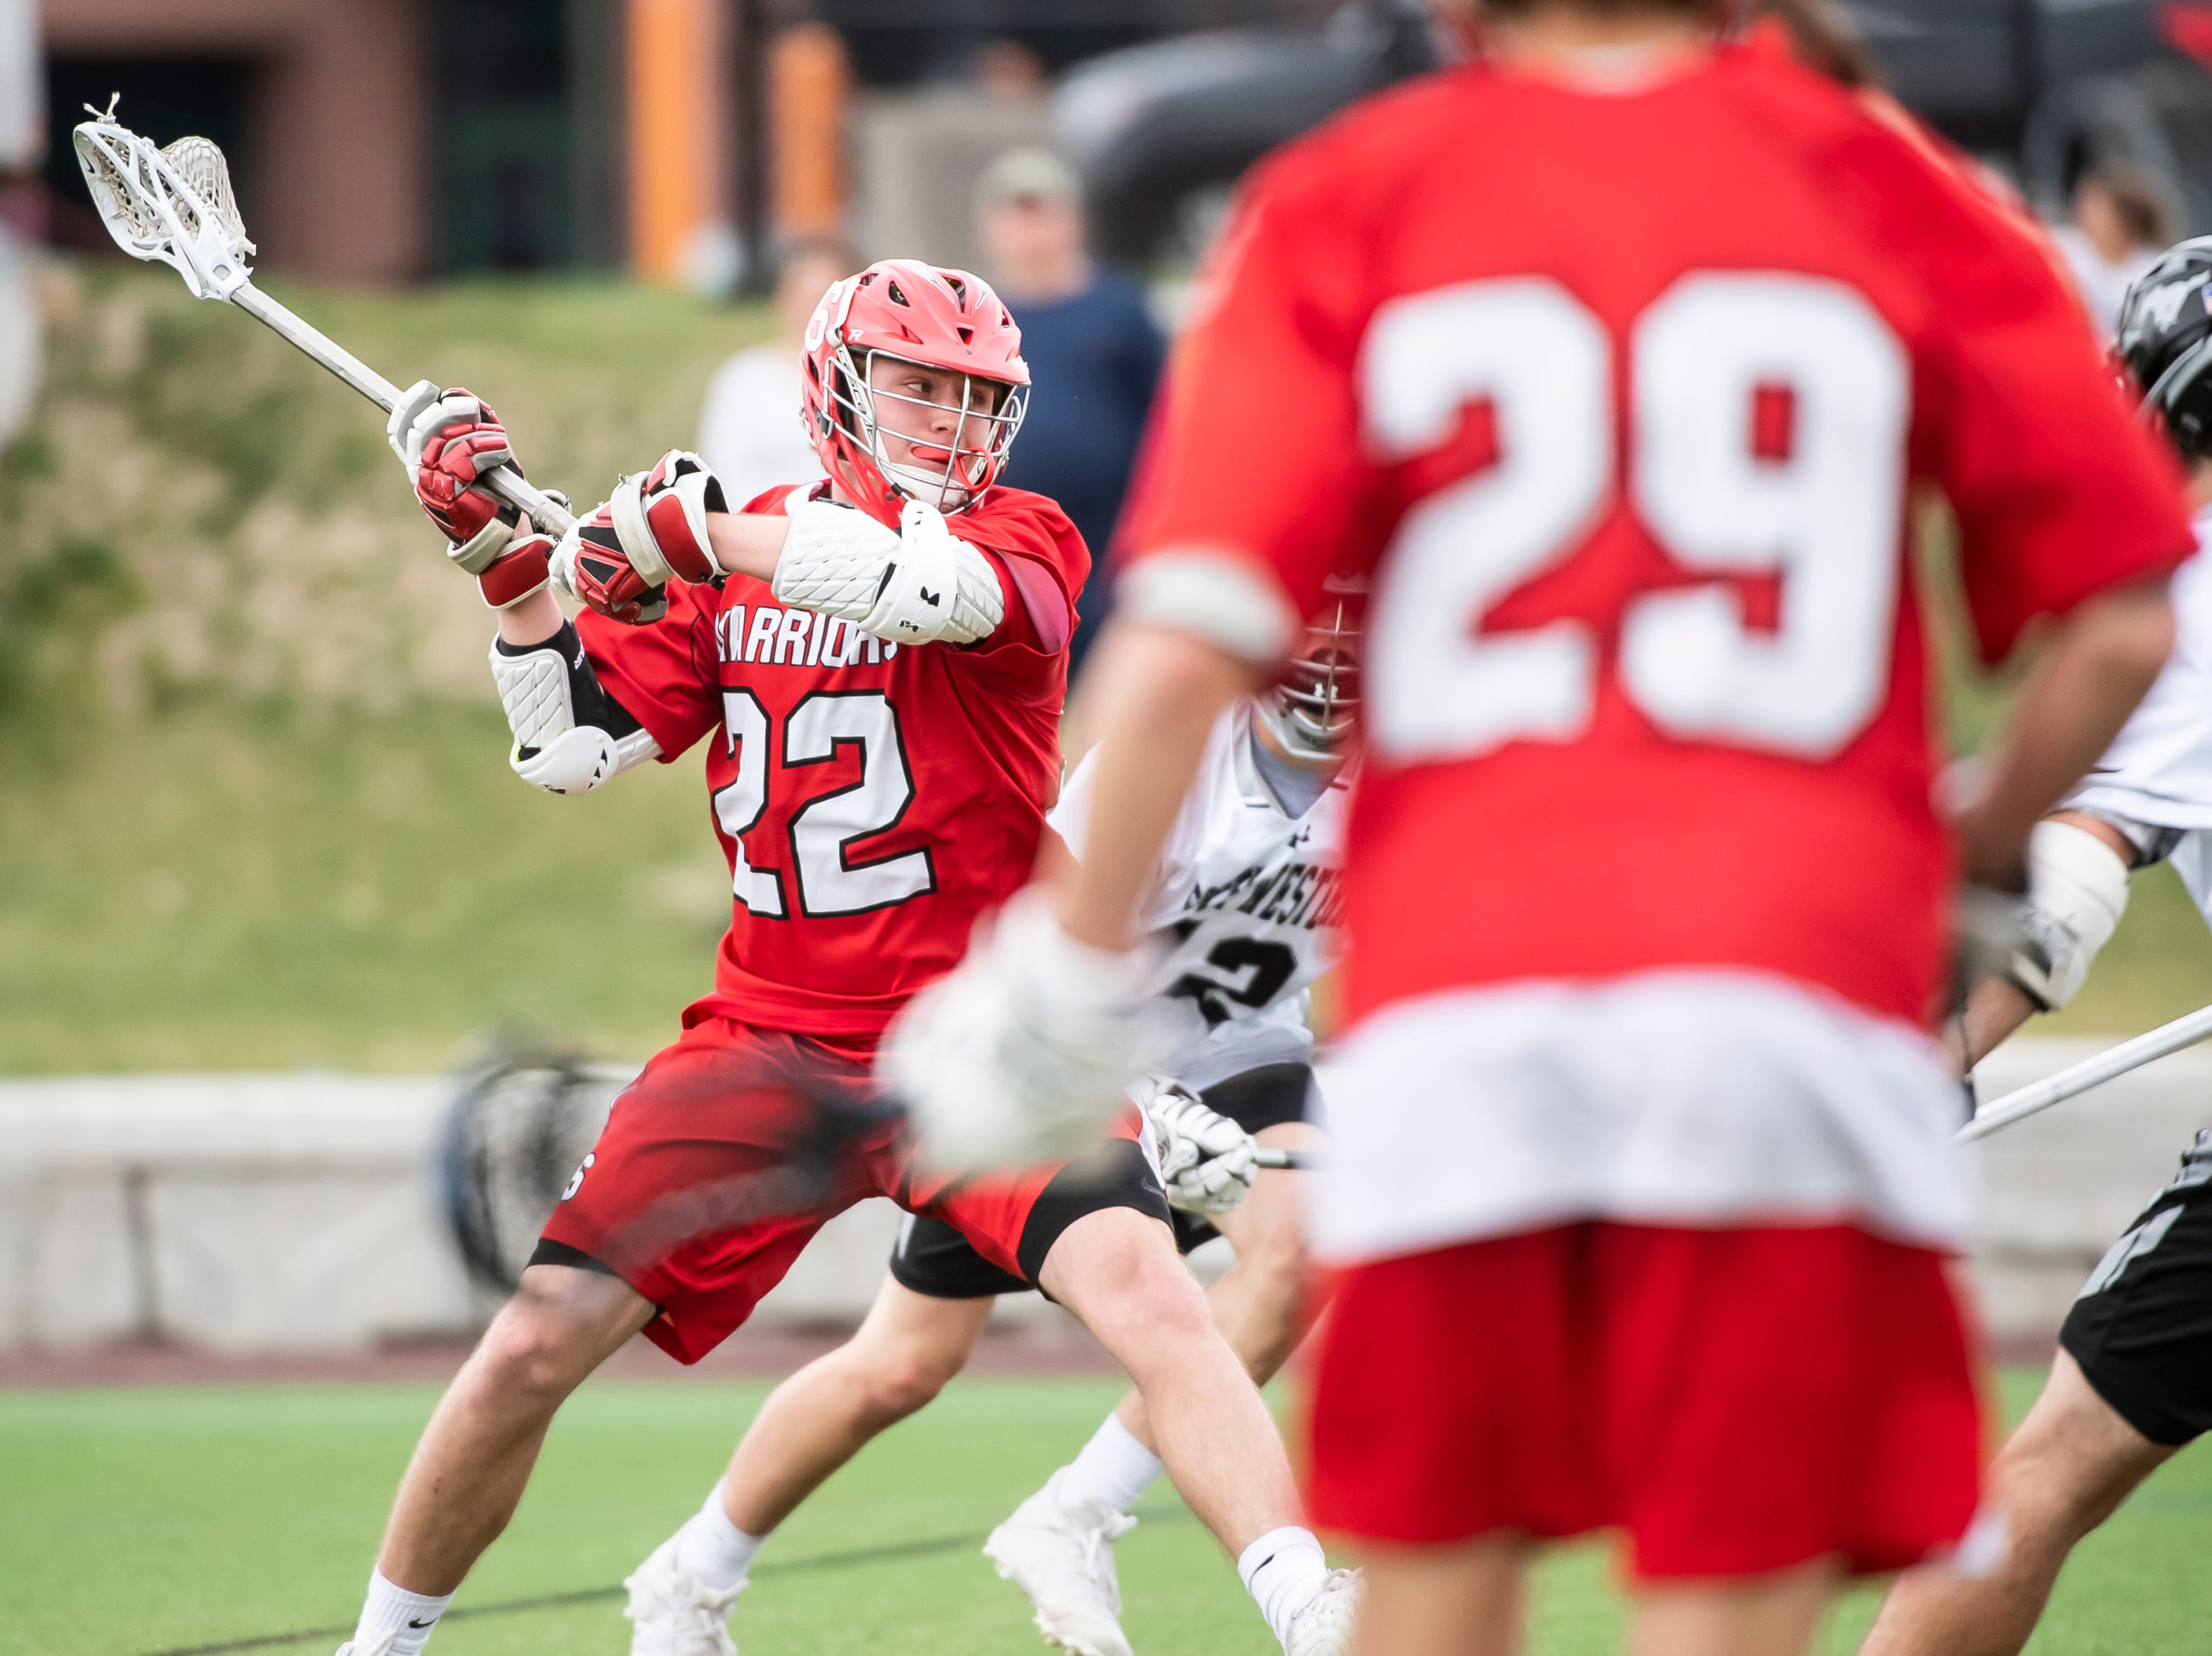 Susquehannock's Allen Clapp takes a shot on goal during a YAIAA lacrosse game against South Western in Hanover on Monday, April 8, 2019. Susquehannock won 14-3.